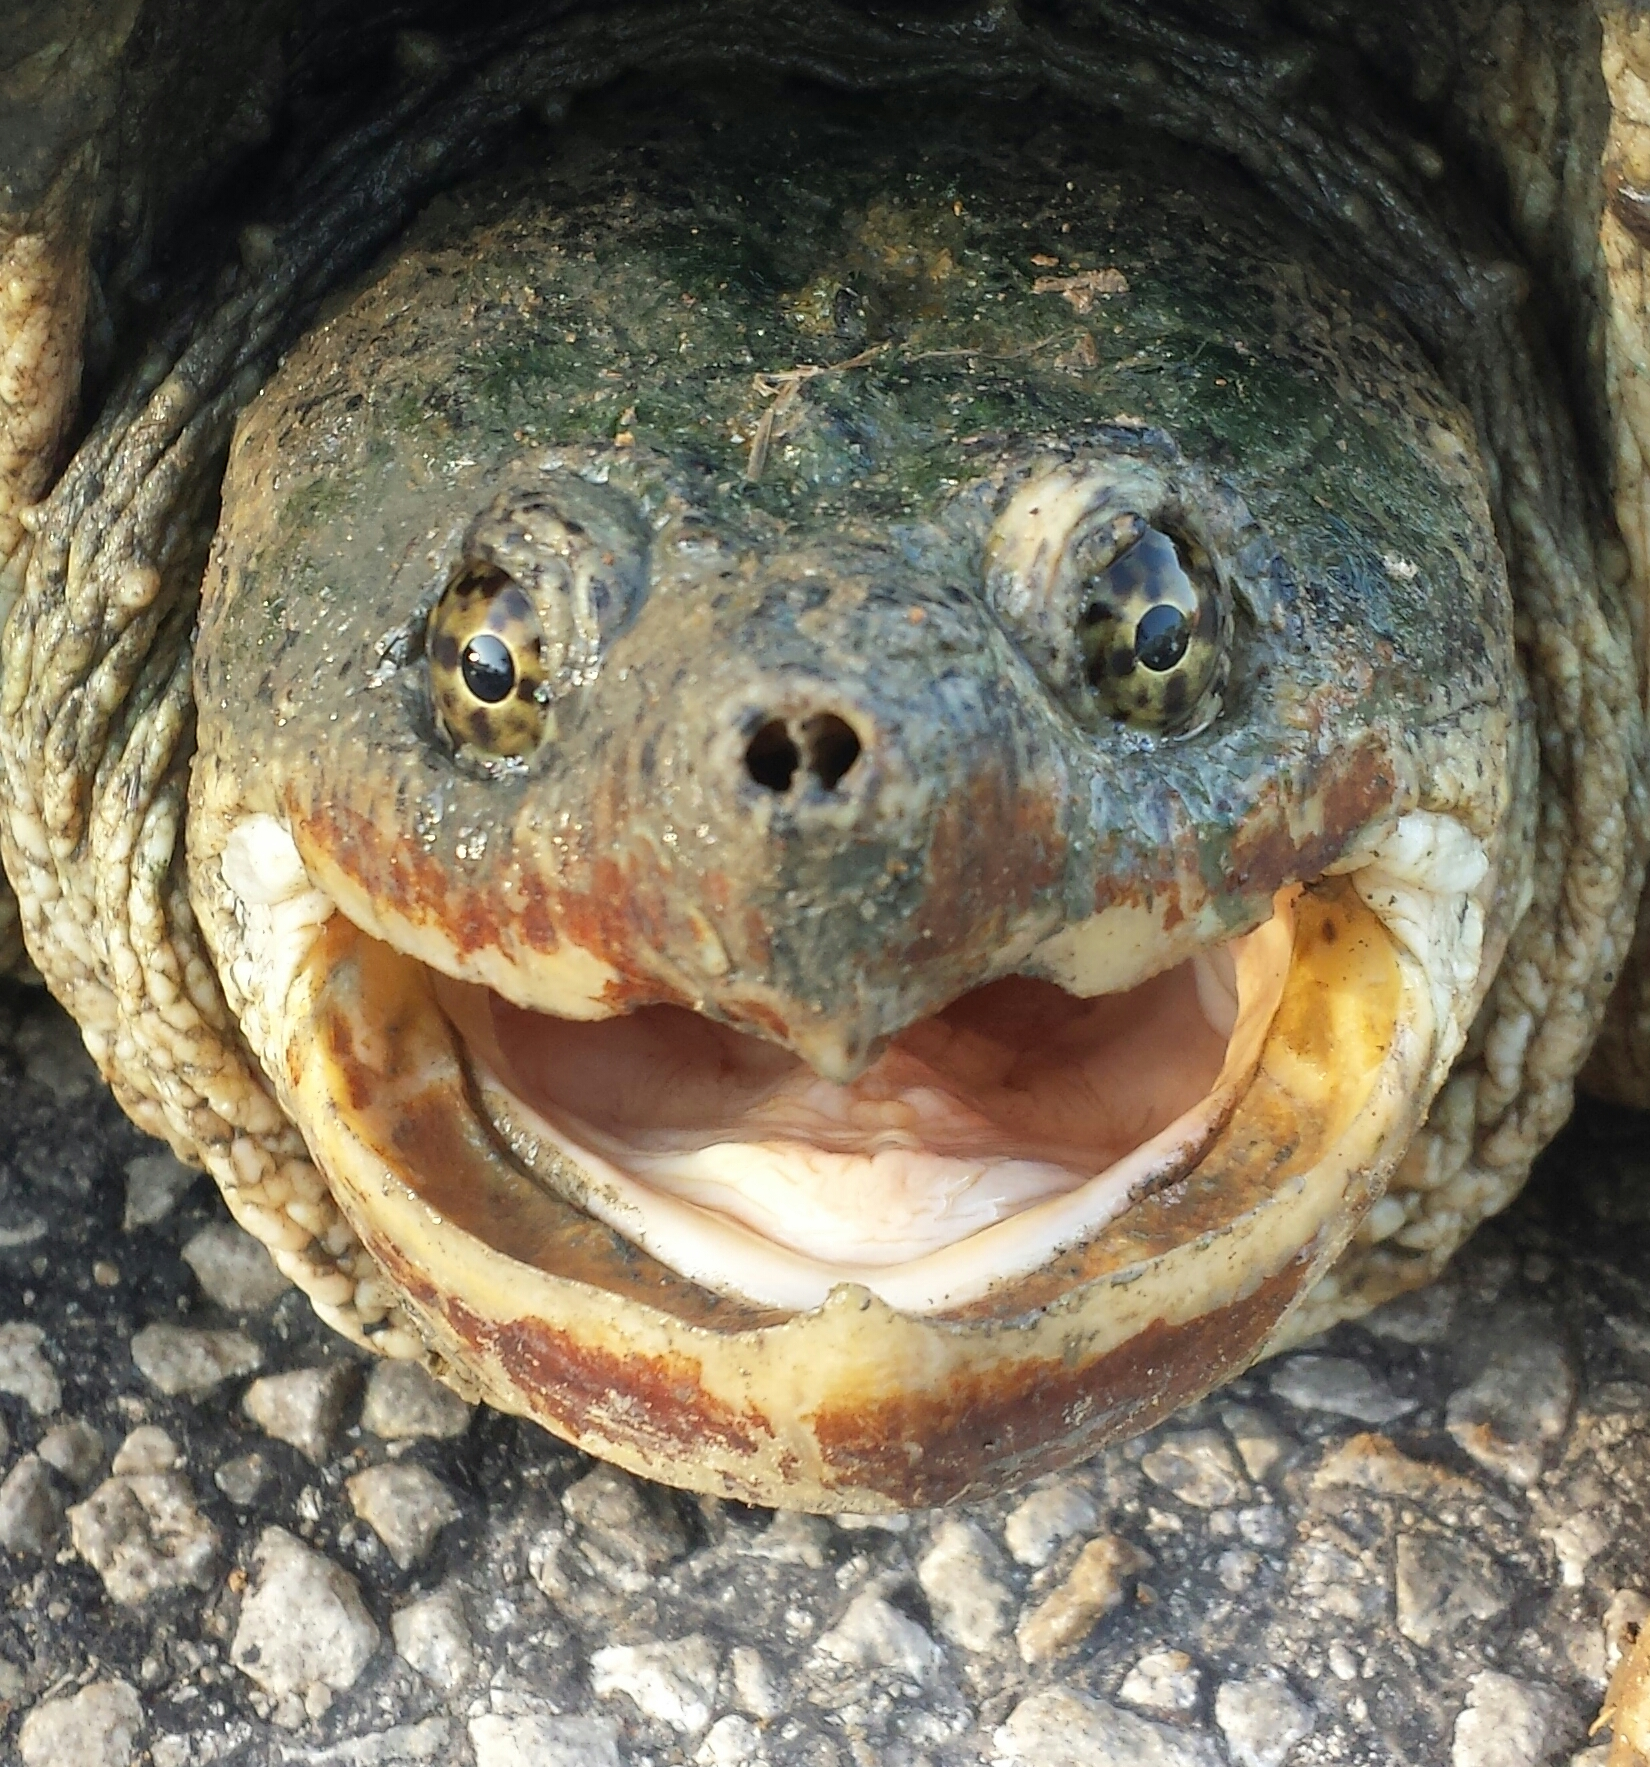 I love it when the turtles laugh.